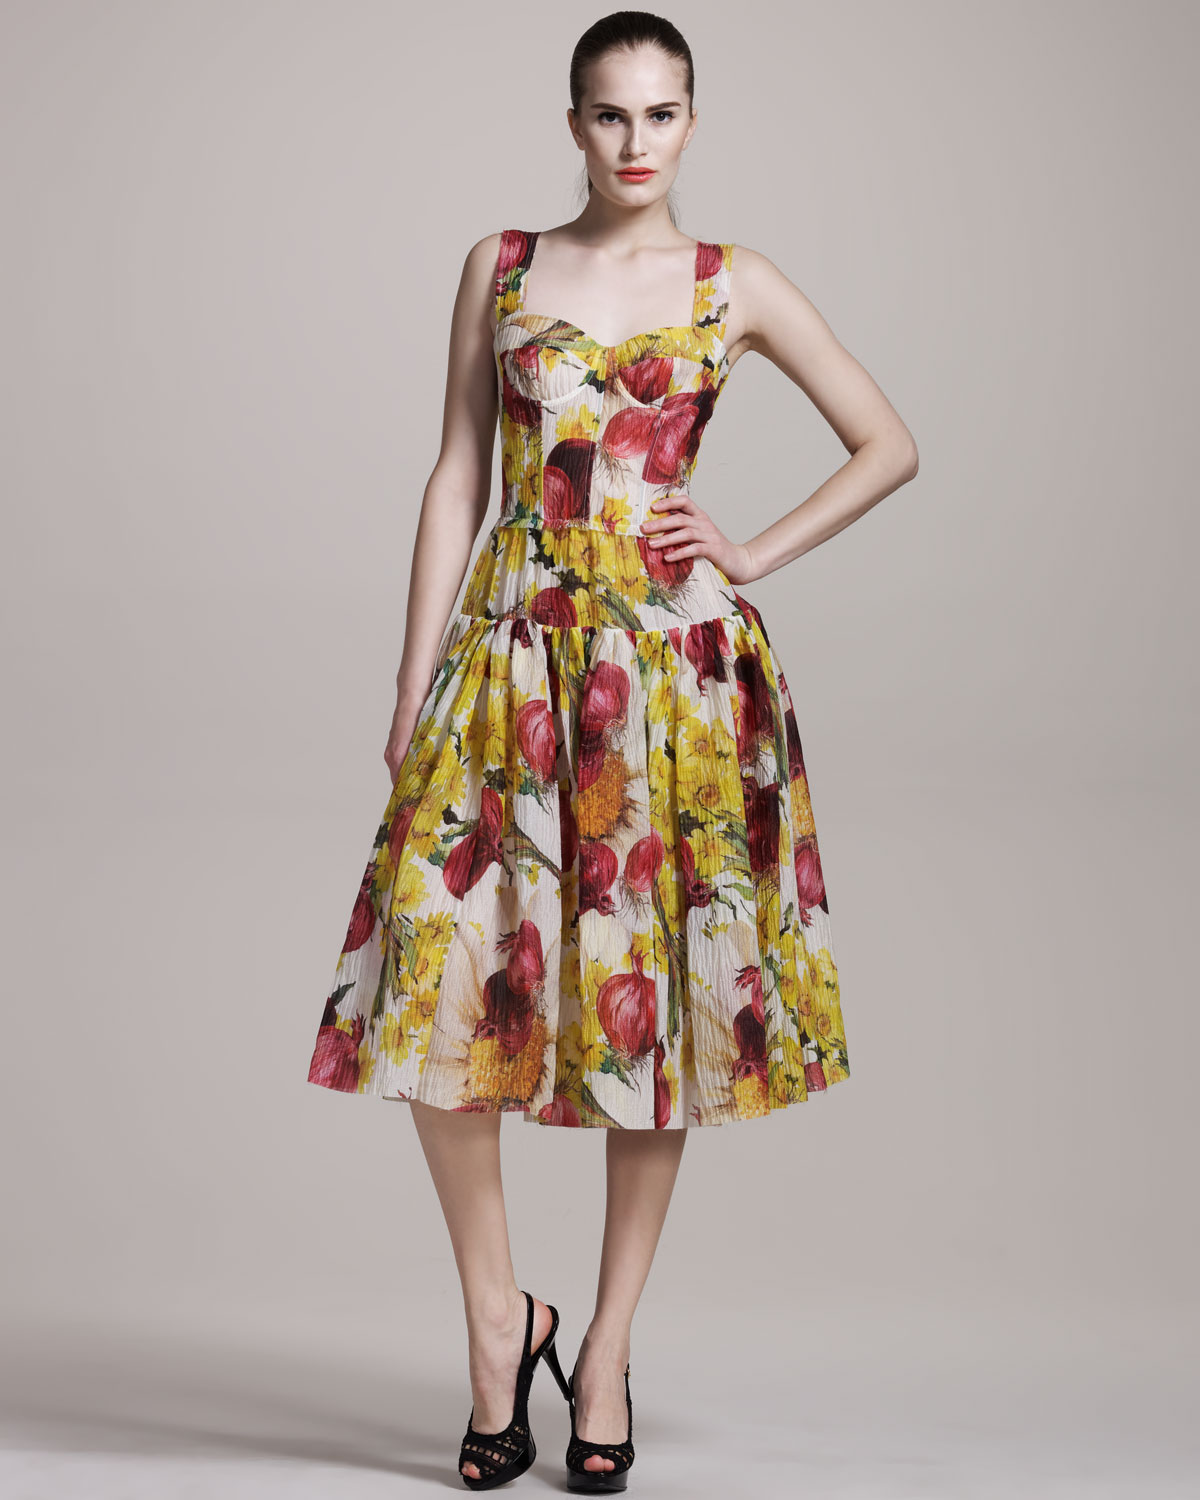 Dolce and gabbana clothes for women